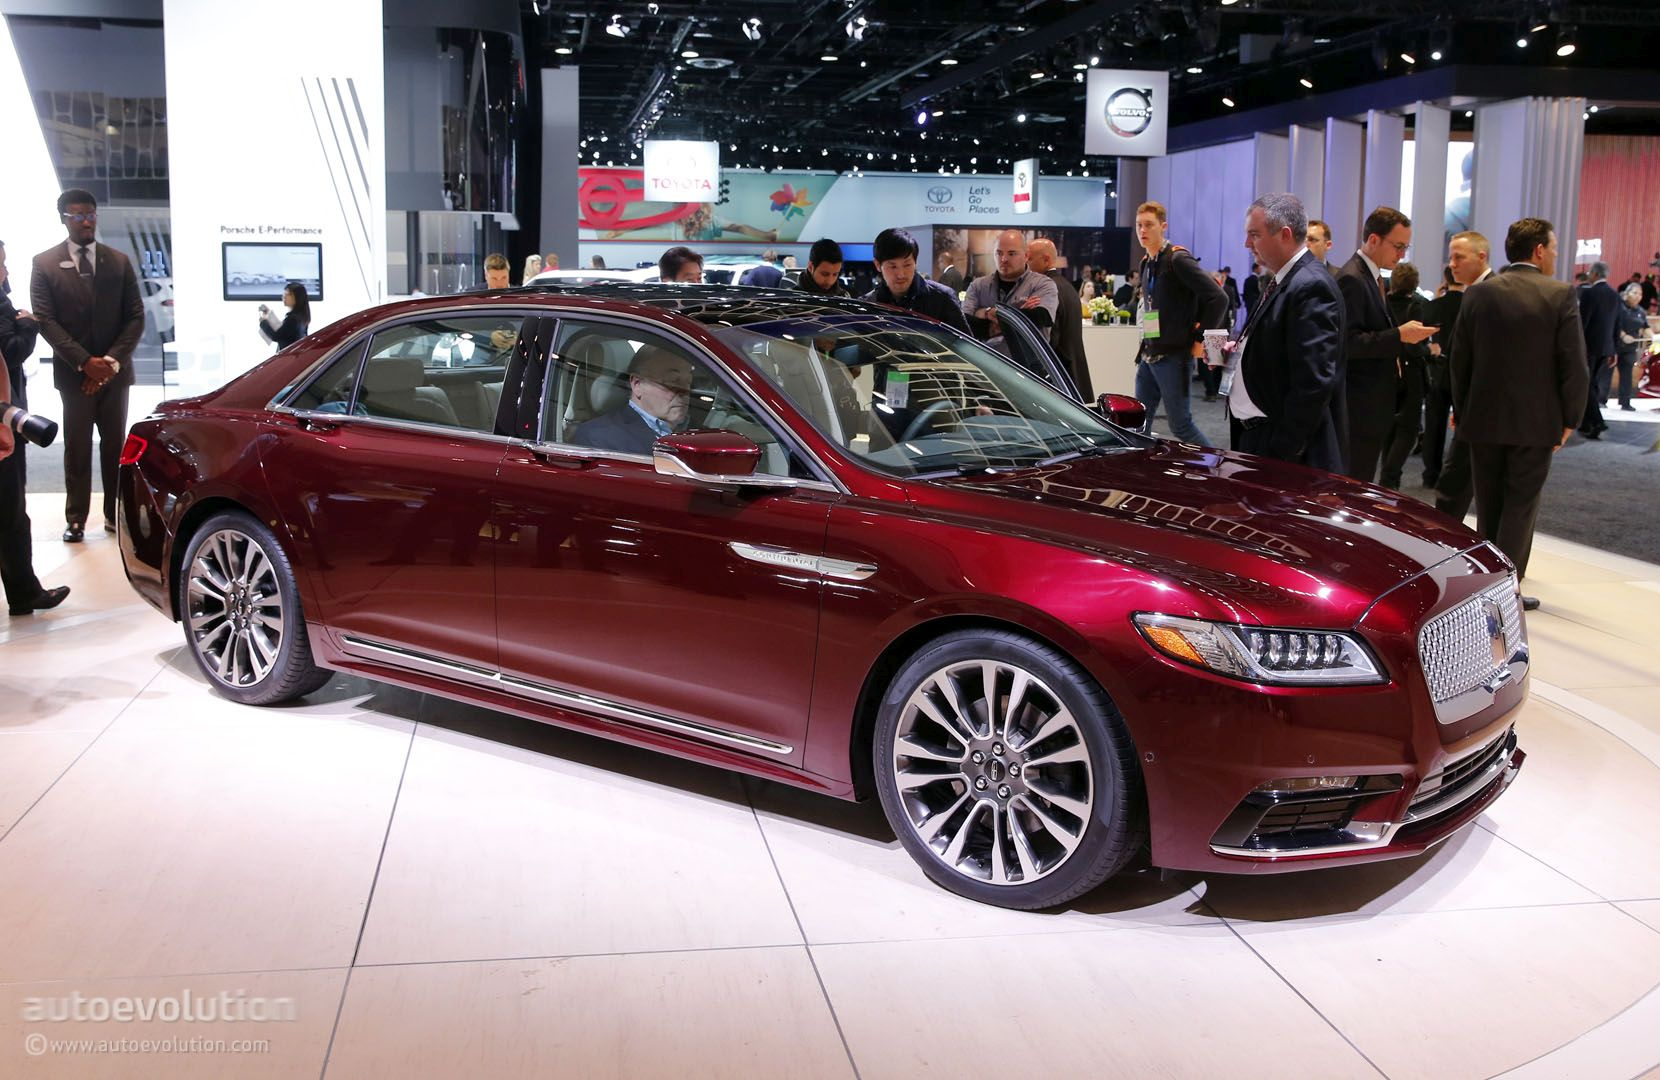 2017 Lincoln Continental Shows 400 HP, 400 LB-FT V6 in Detroit ...